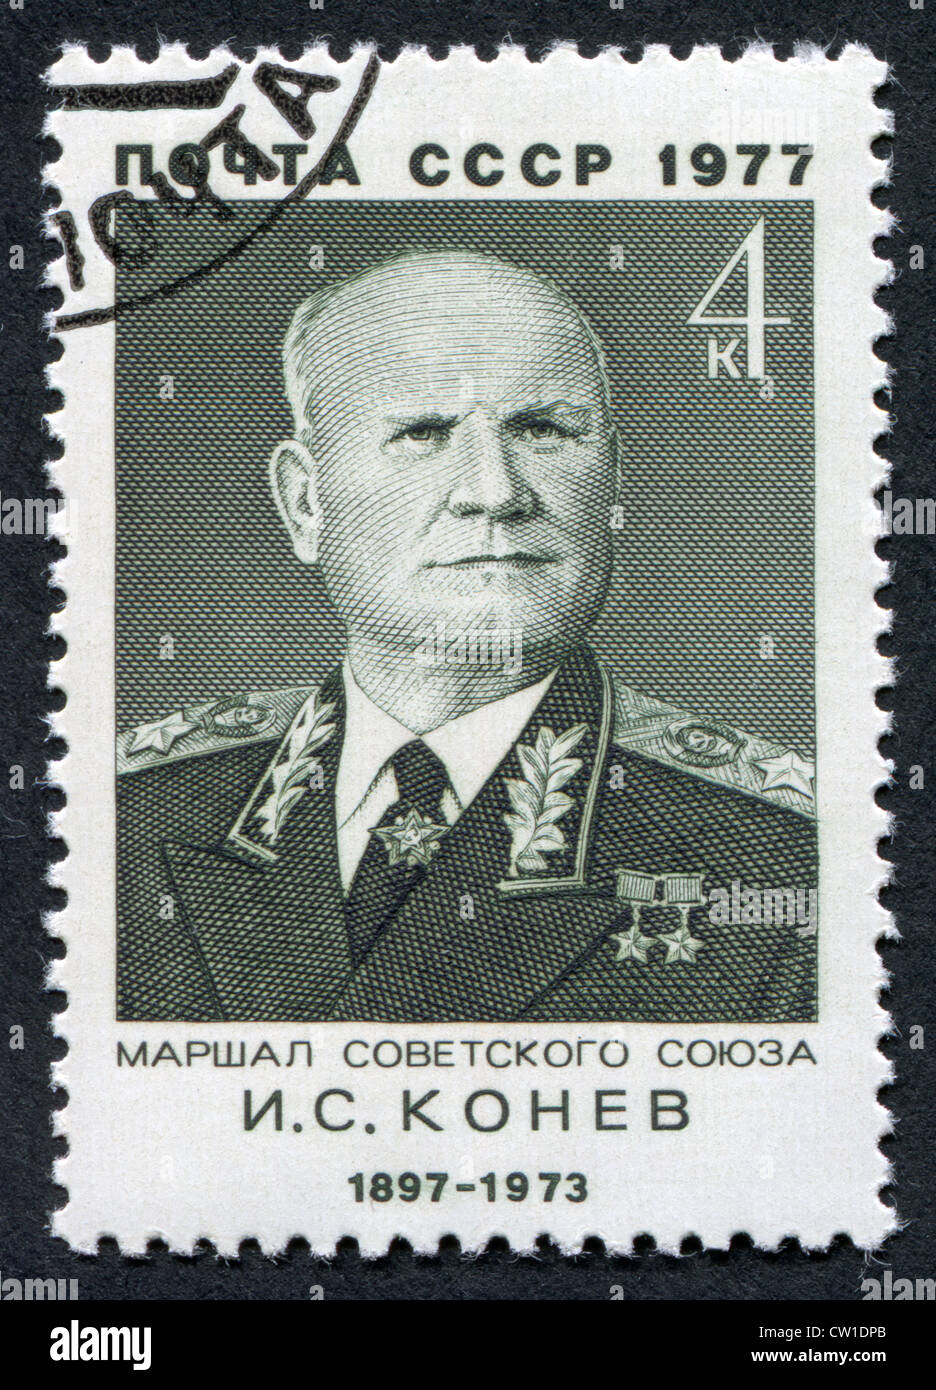 USSR - CIRCA 1977: A stamp printed in the USSR shows Marshal I.S. Konev, circa 1977. - Stock Image